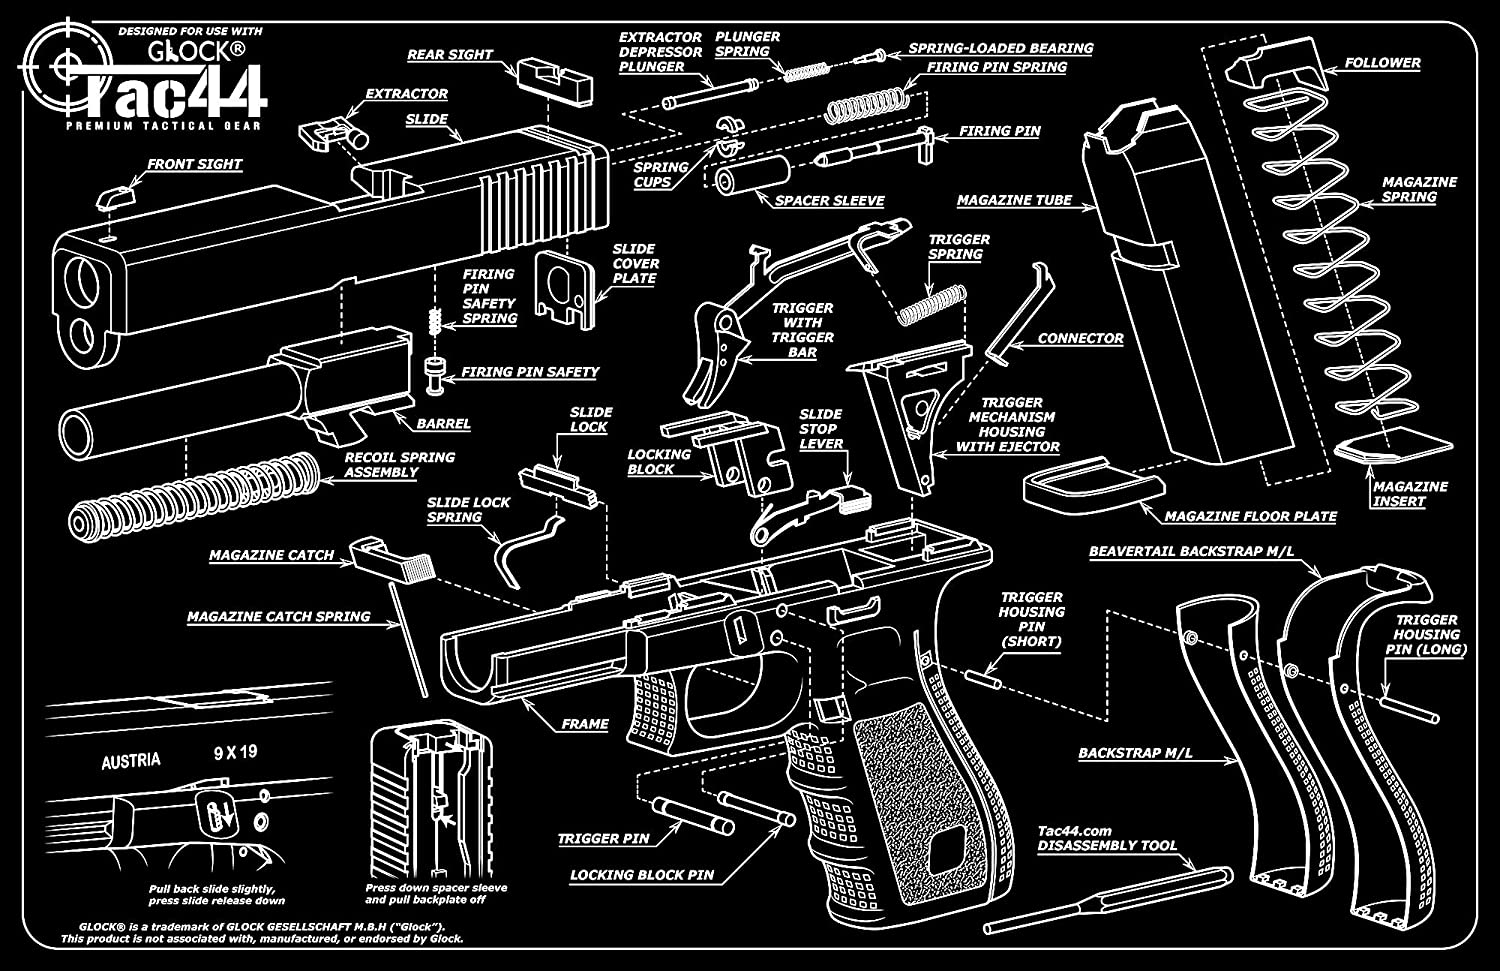 tac44 glock gun cleaning mat tools glock diagram glock rh novoteto pt block diagram glock diagram of parts